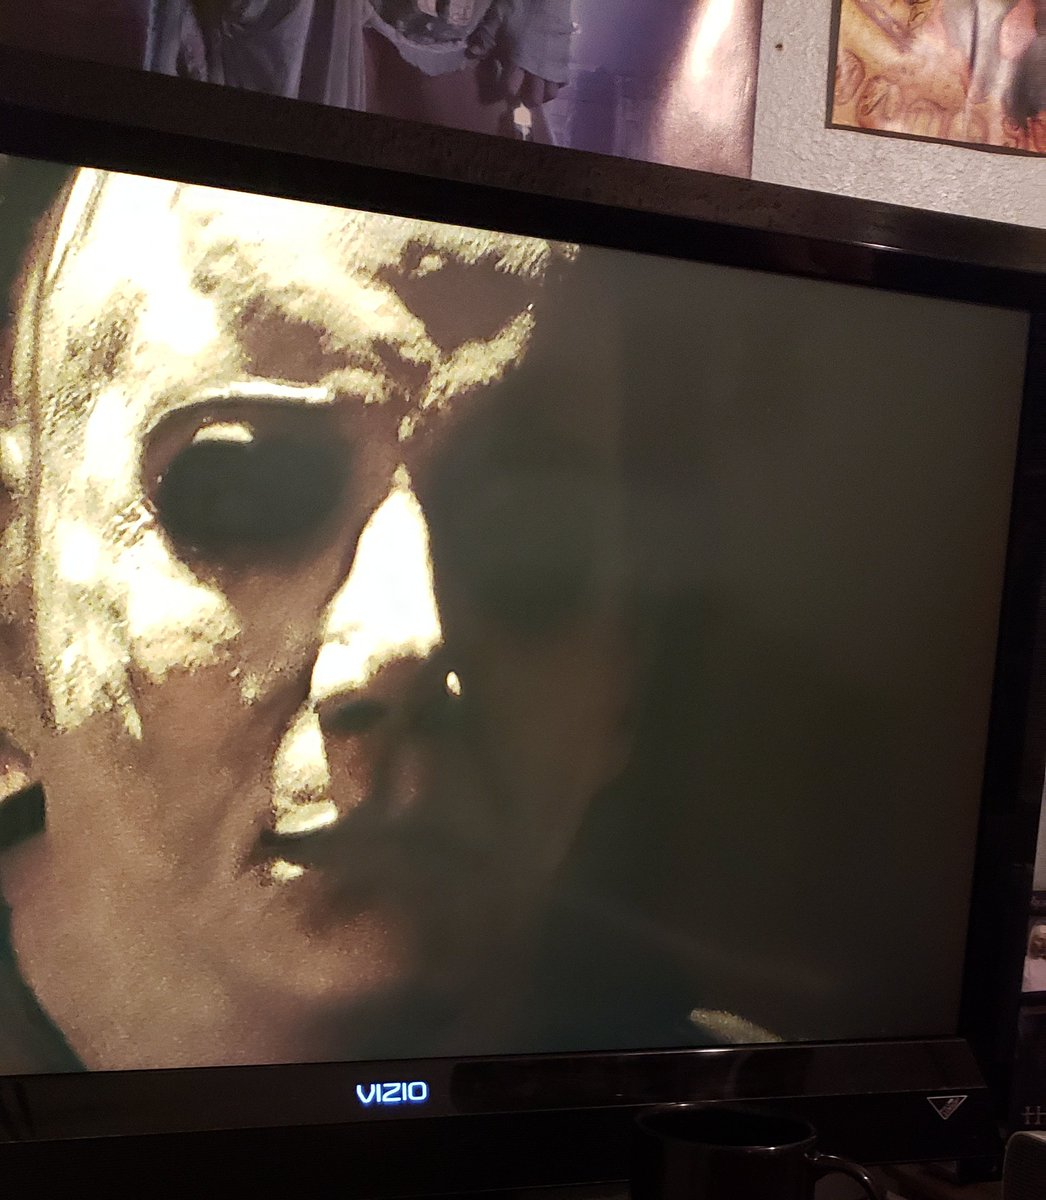 One two Michael coming for you  #CurseOfMichaelMyers #MutantFam @LisaPortillo9pic.twitter.com/zYCiEaNNt4